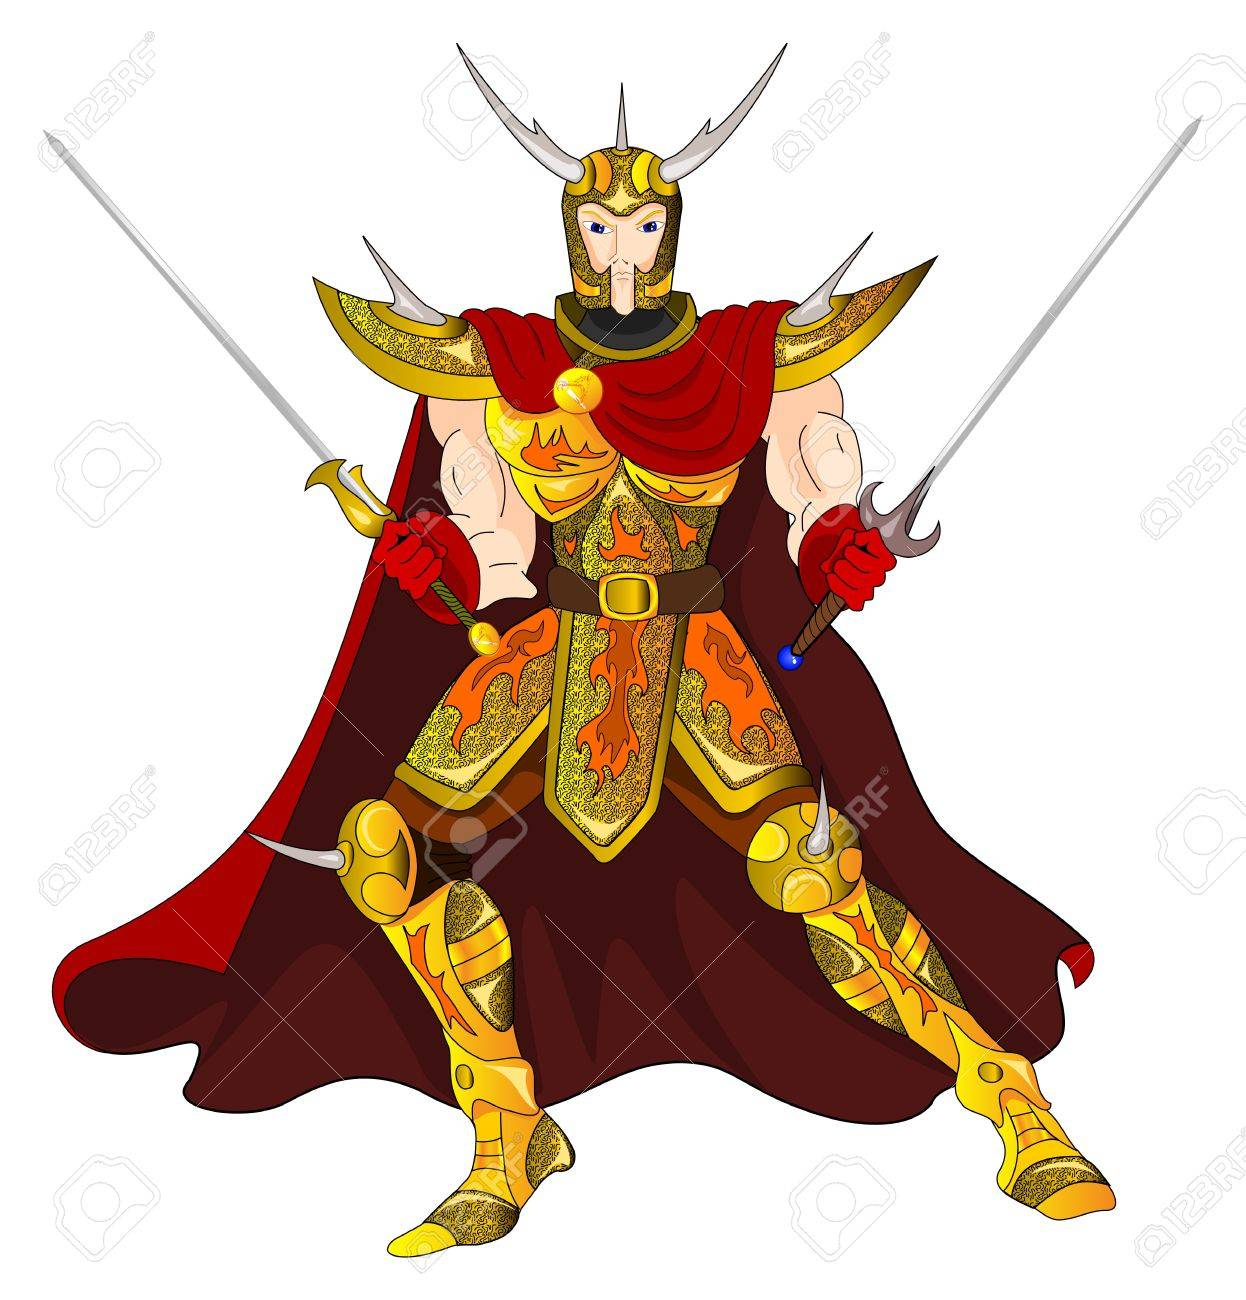 Gold Warrior with two-handed swords - 12804771